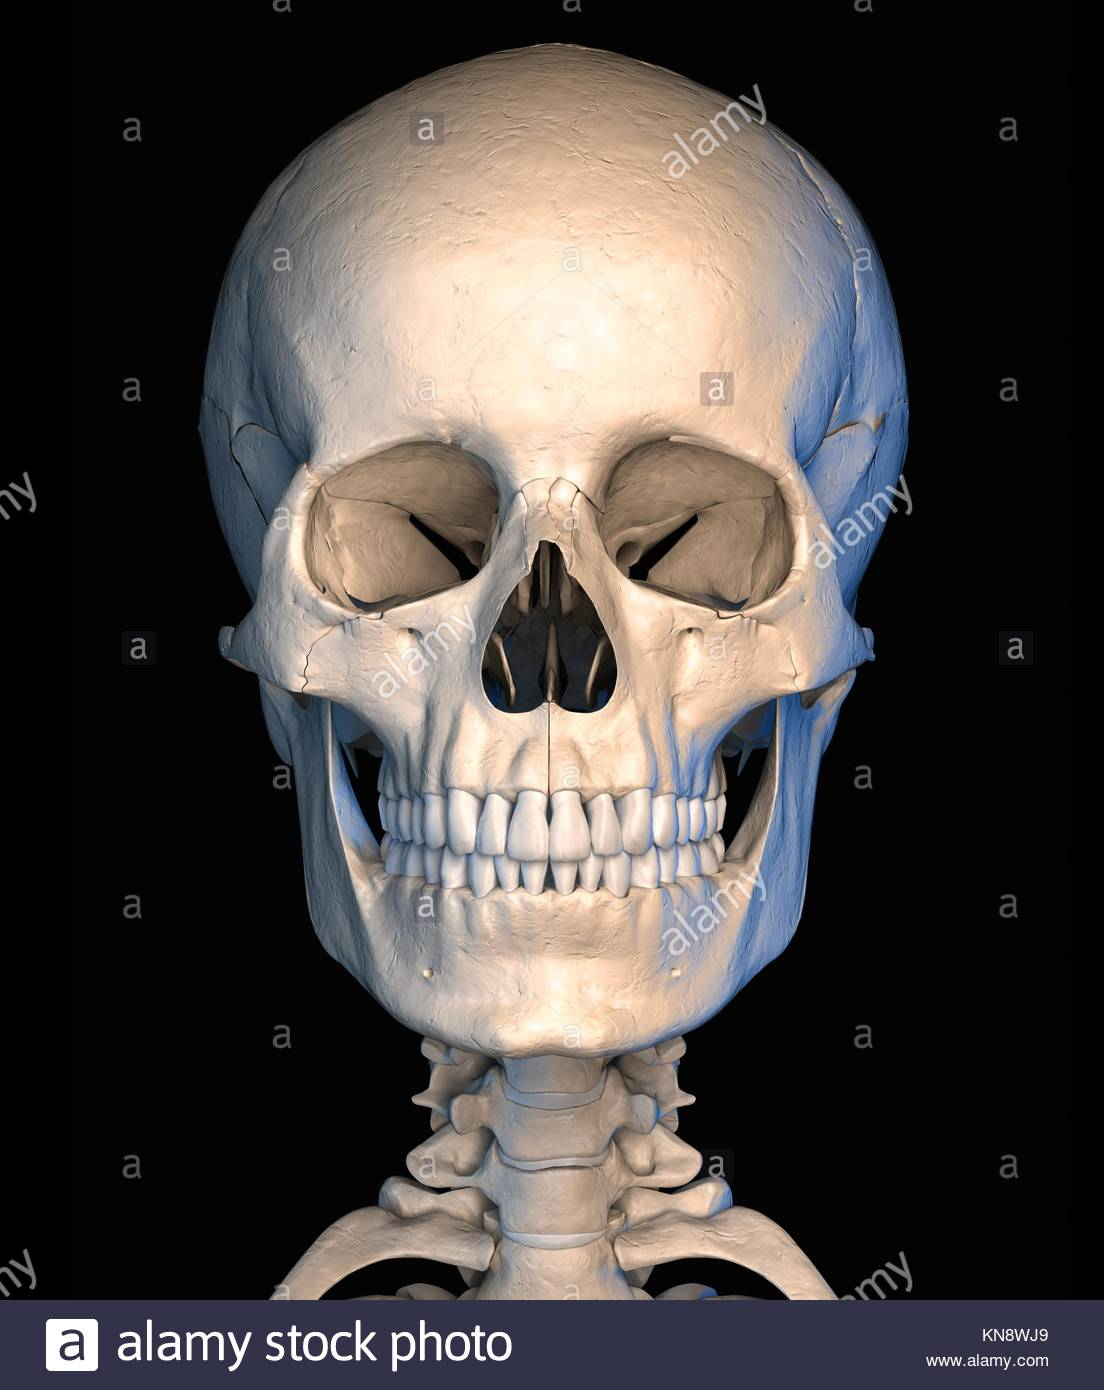 Very Detailed And Scientifically Correct Human Skull Front View